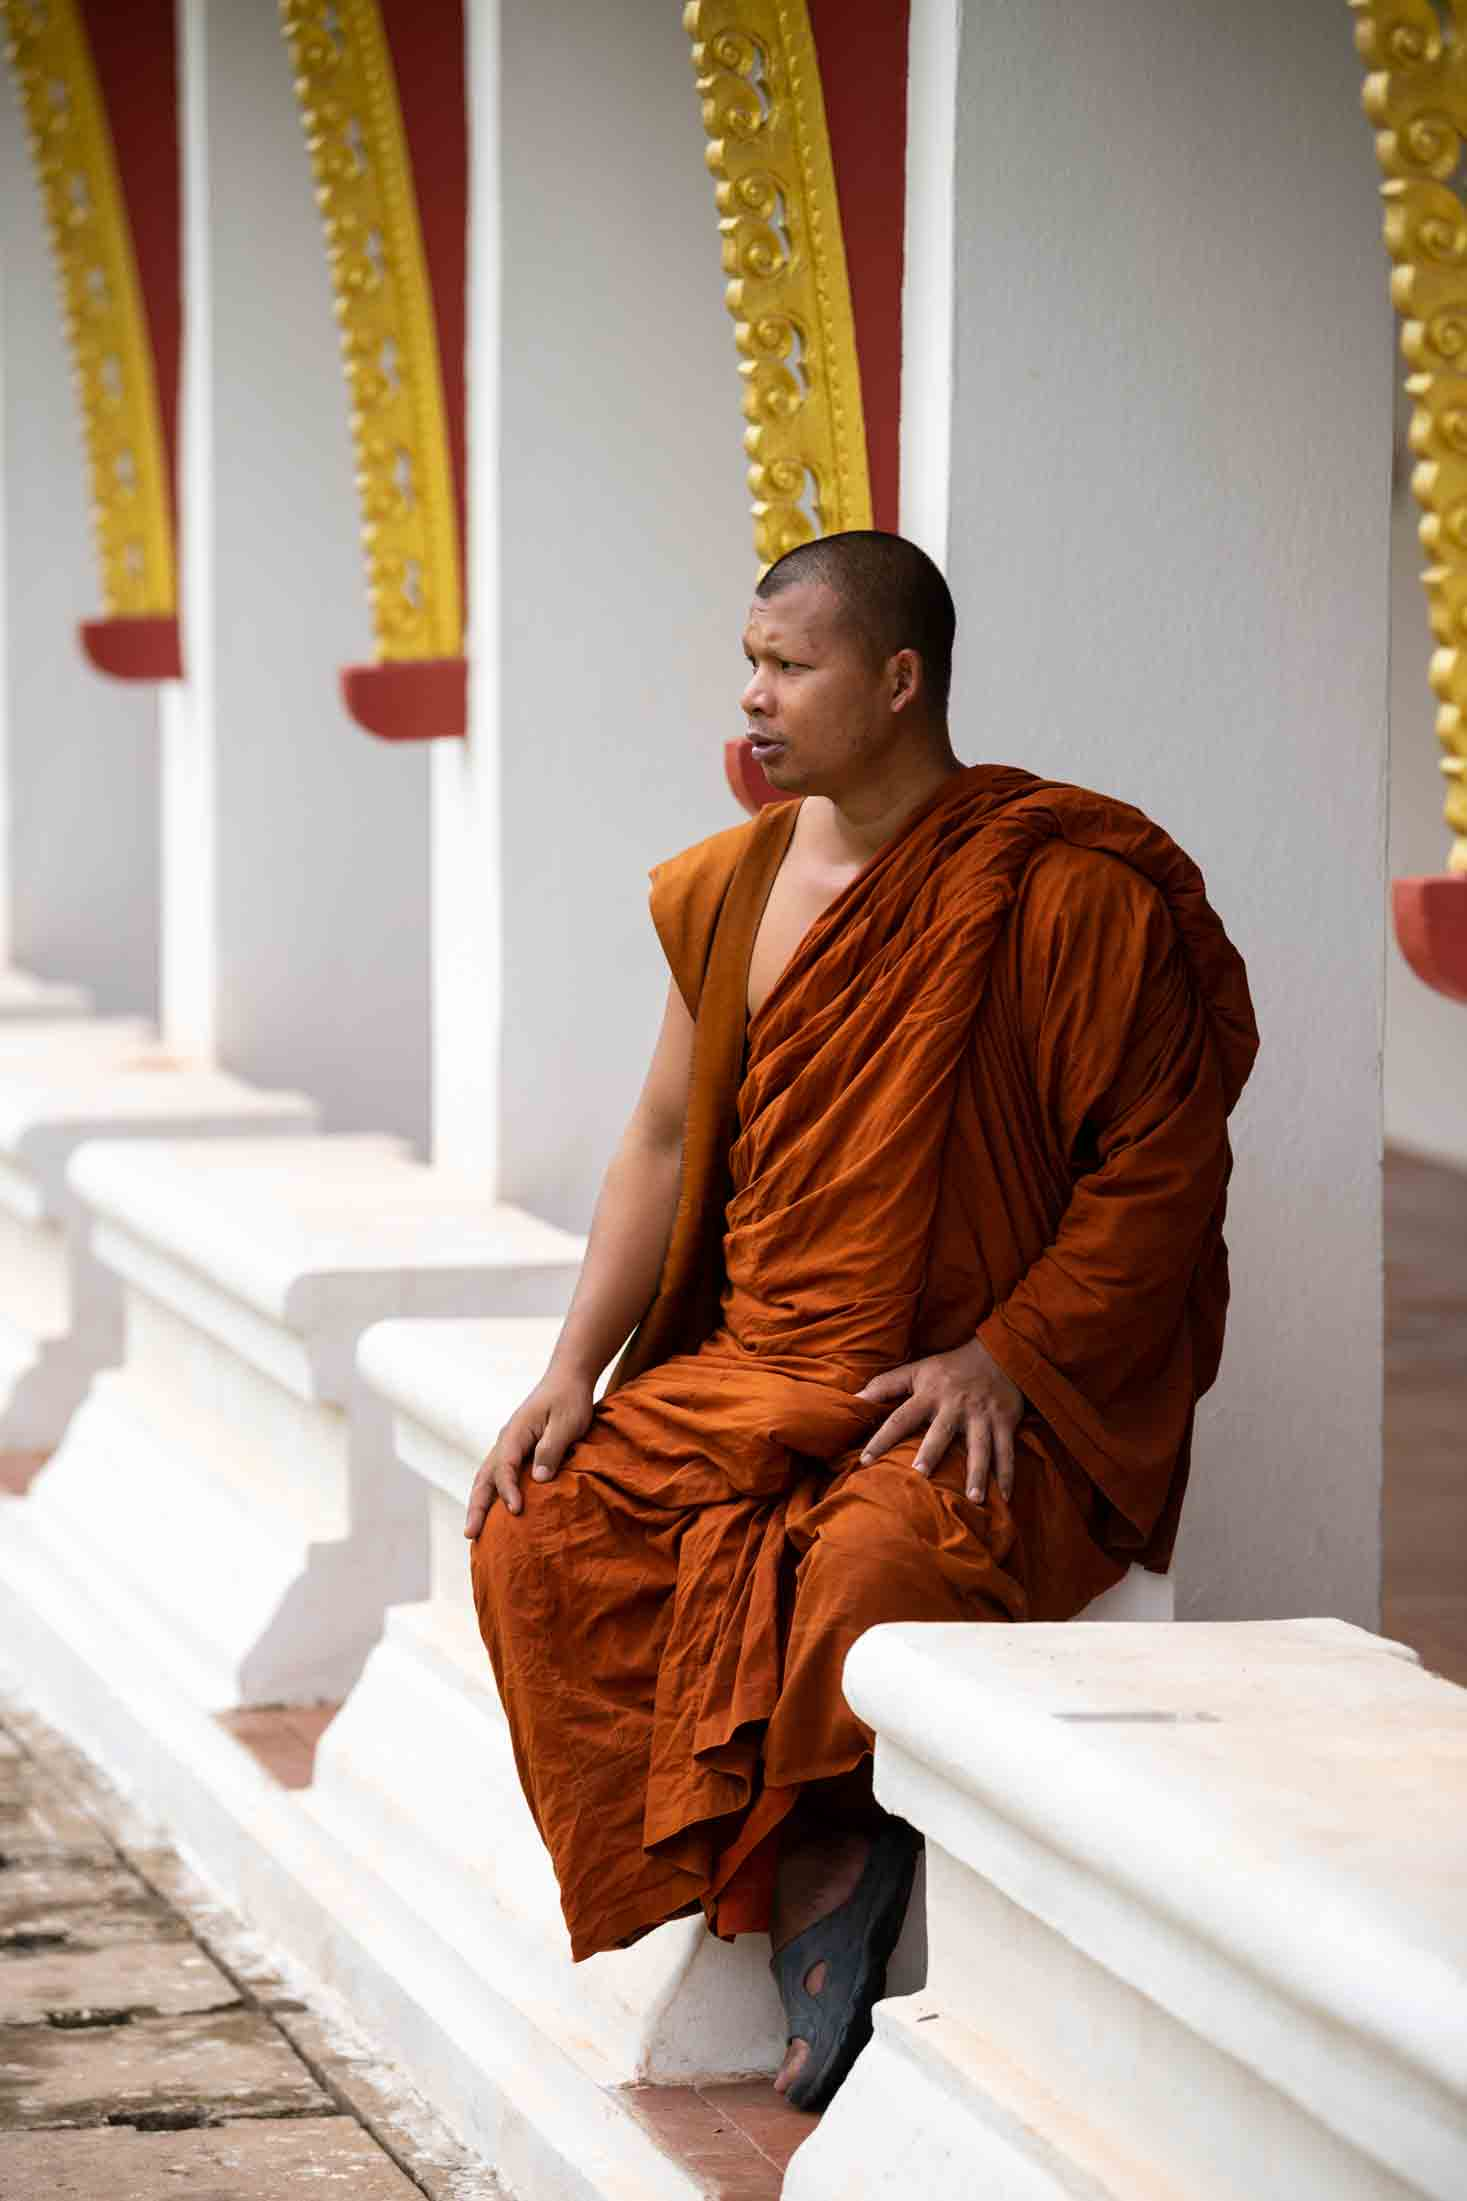 Buddhist monks in Sri Lanka fear that if more people become Christians, the monks will lose their status in Sri Lanka.